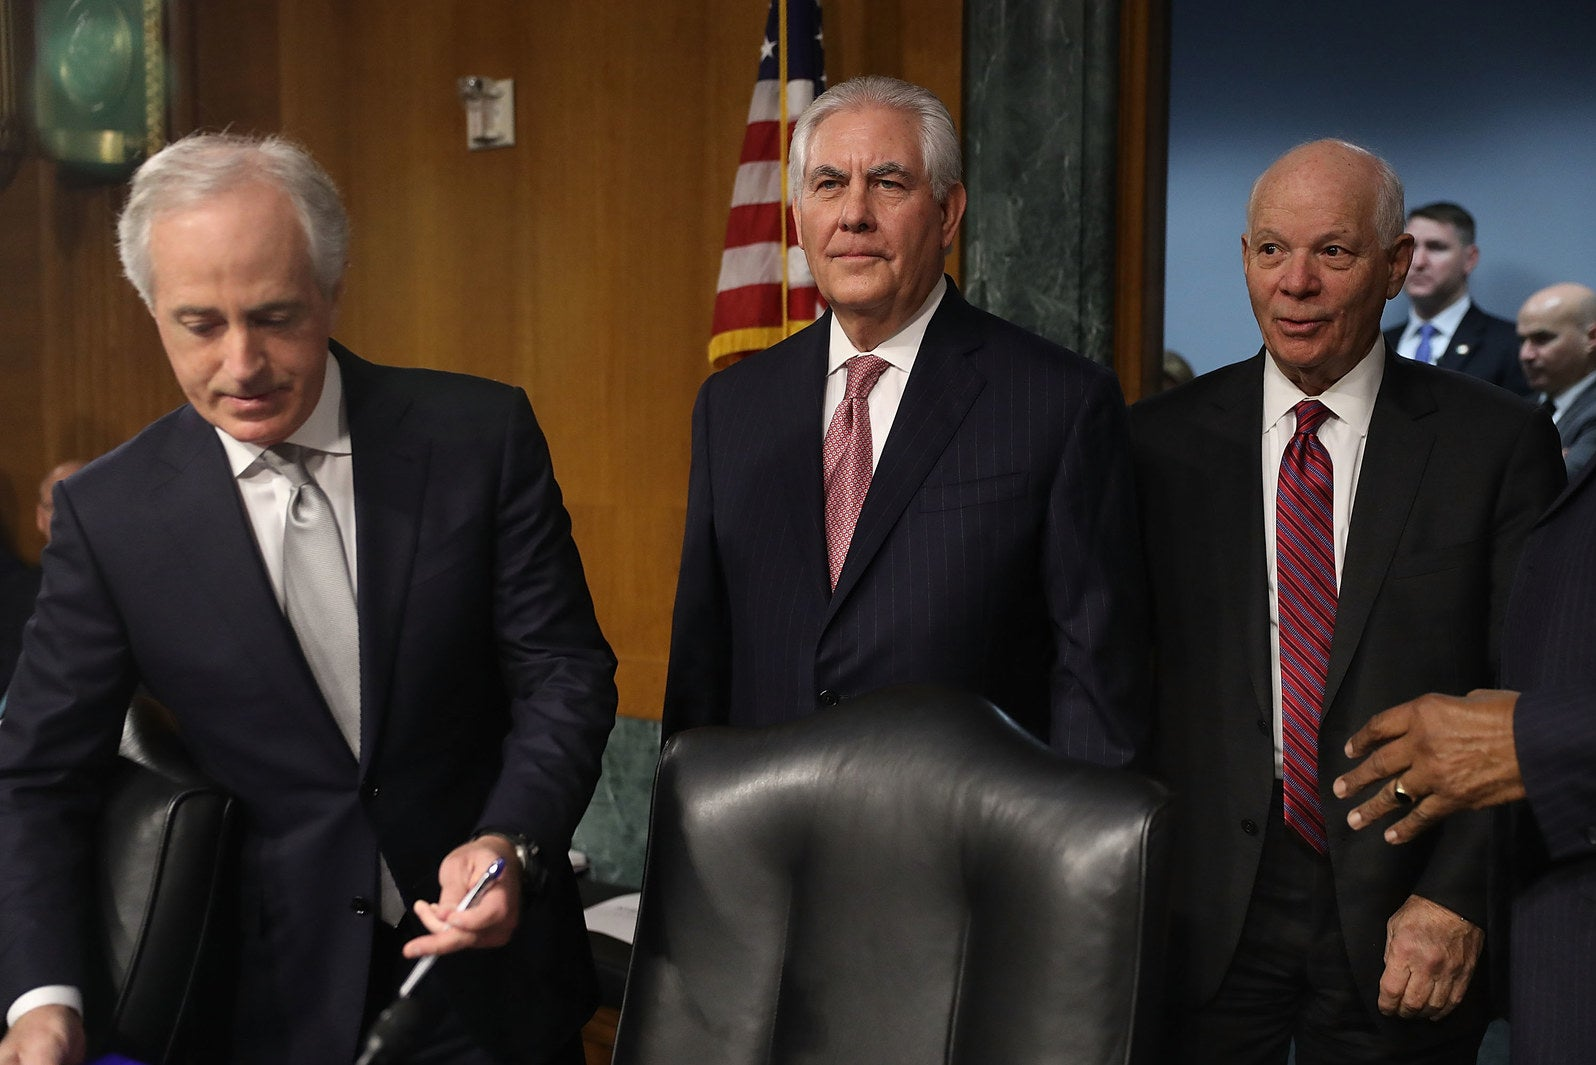 Rex Tillerson (center) with Sen. Ben Cardin (right) during a Senate Foreign Relations Committee hearing in January.